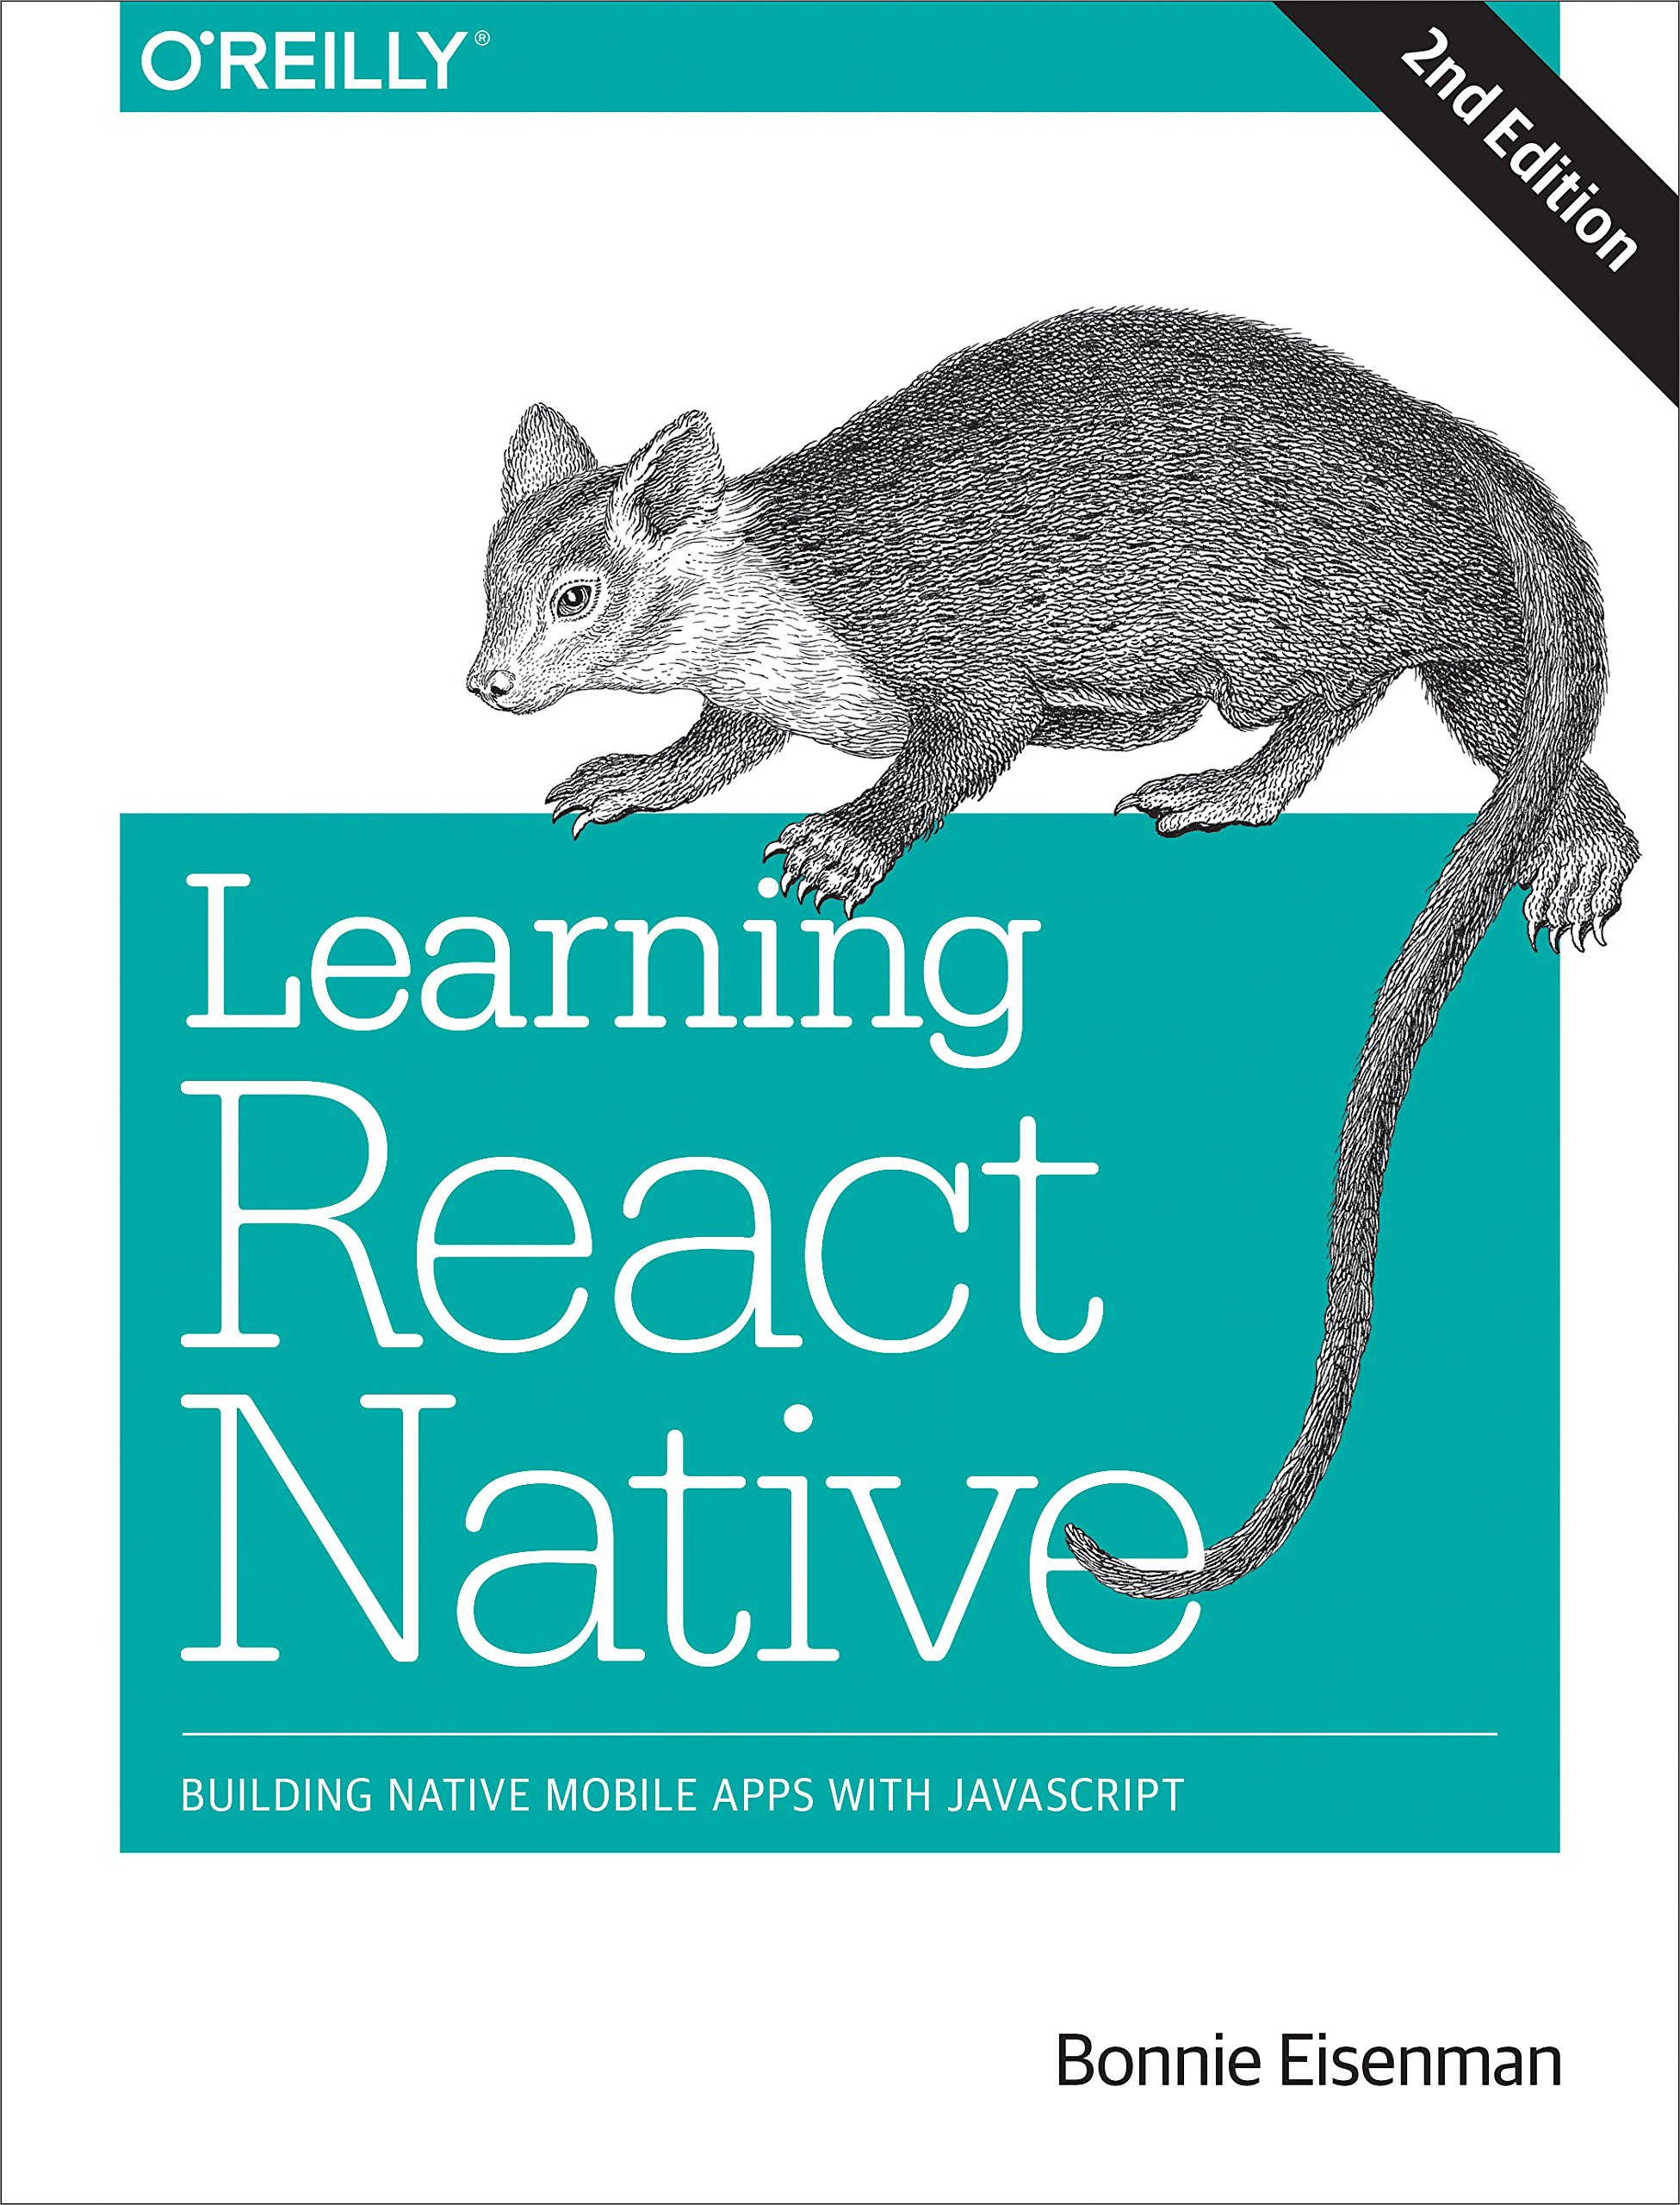 Learning React Native: Building Native Mobile Apps with JavaScript by O'Reilly Media